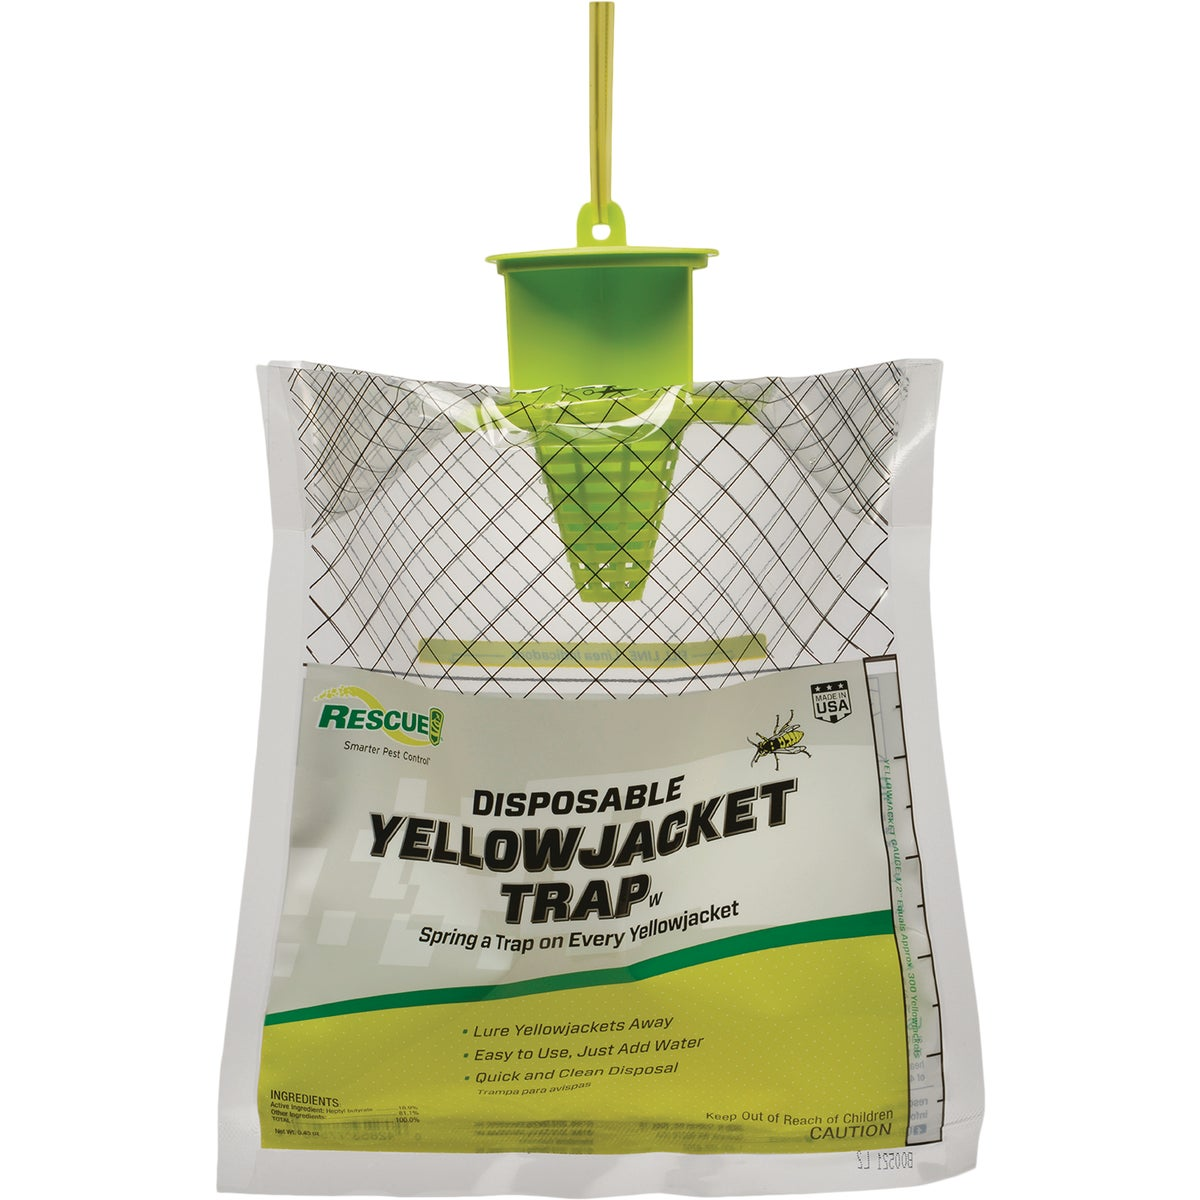 DISPOS YELLOWJACKET TRAP